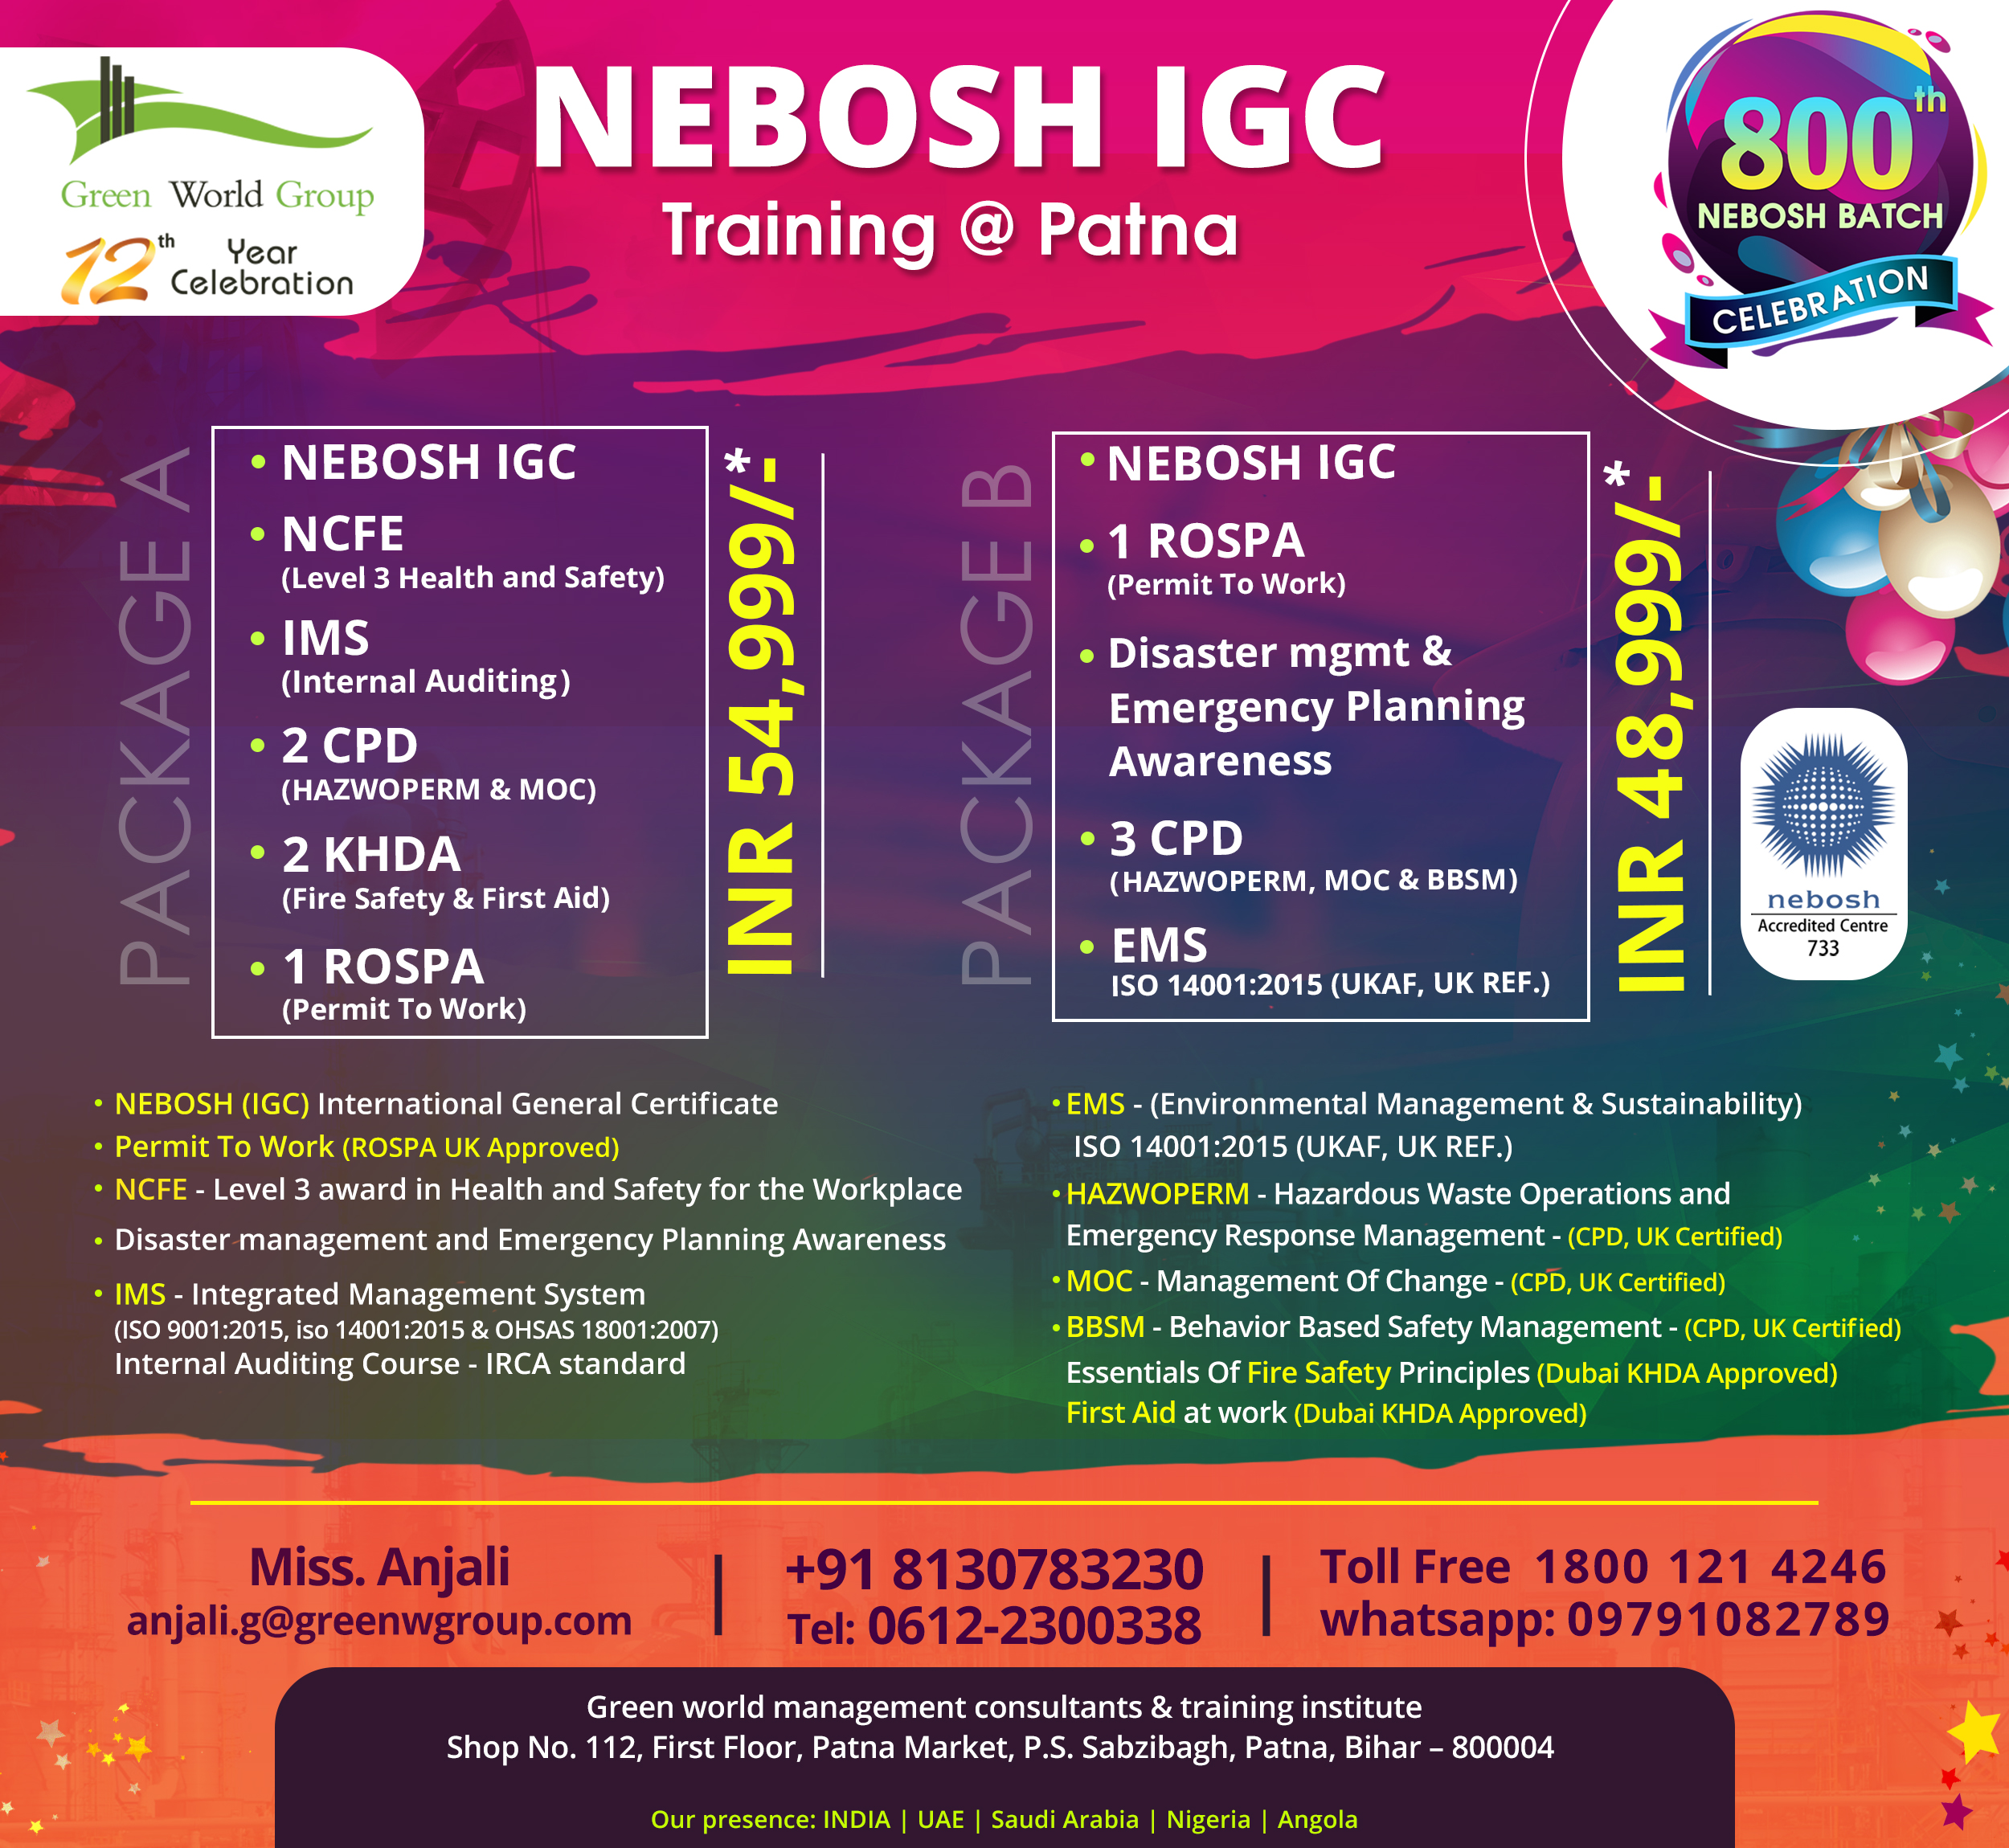 NEBOSH-IGC_800th_Batch_Patna